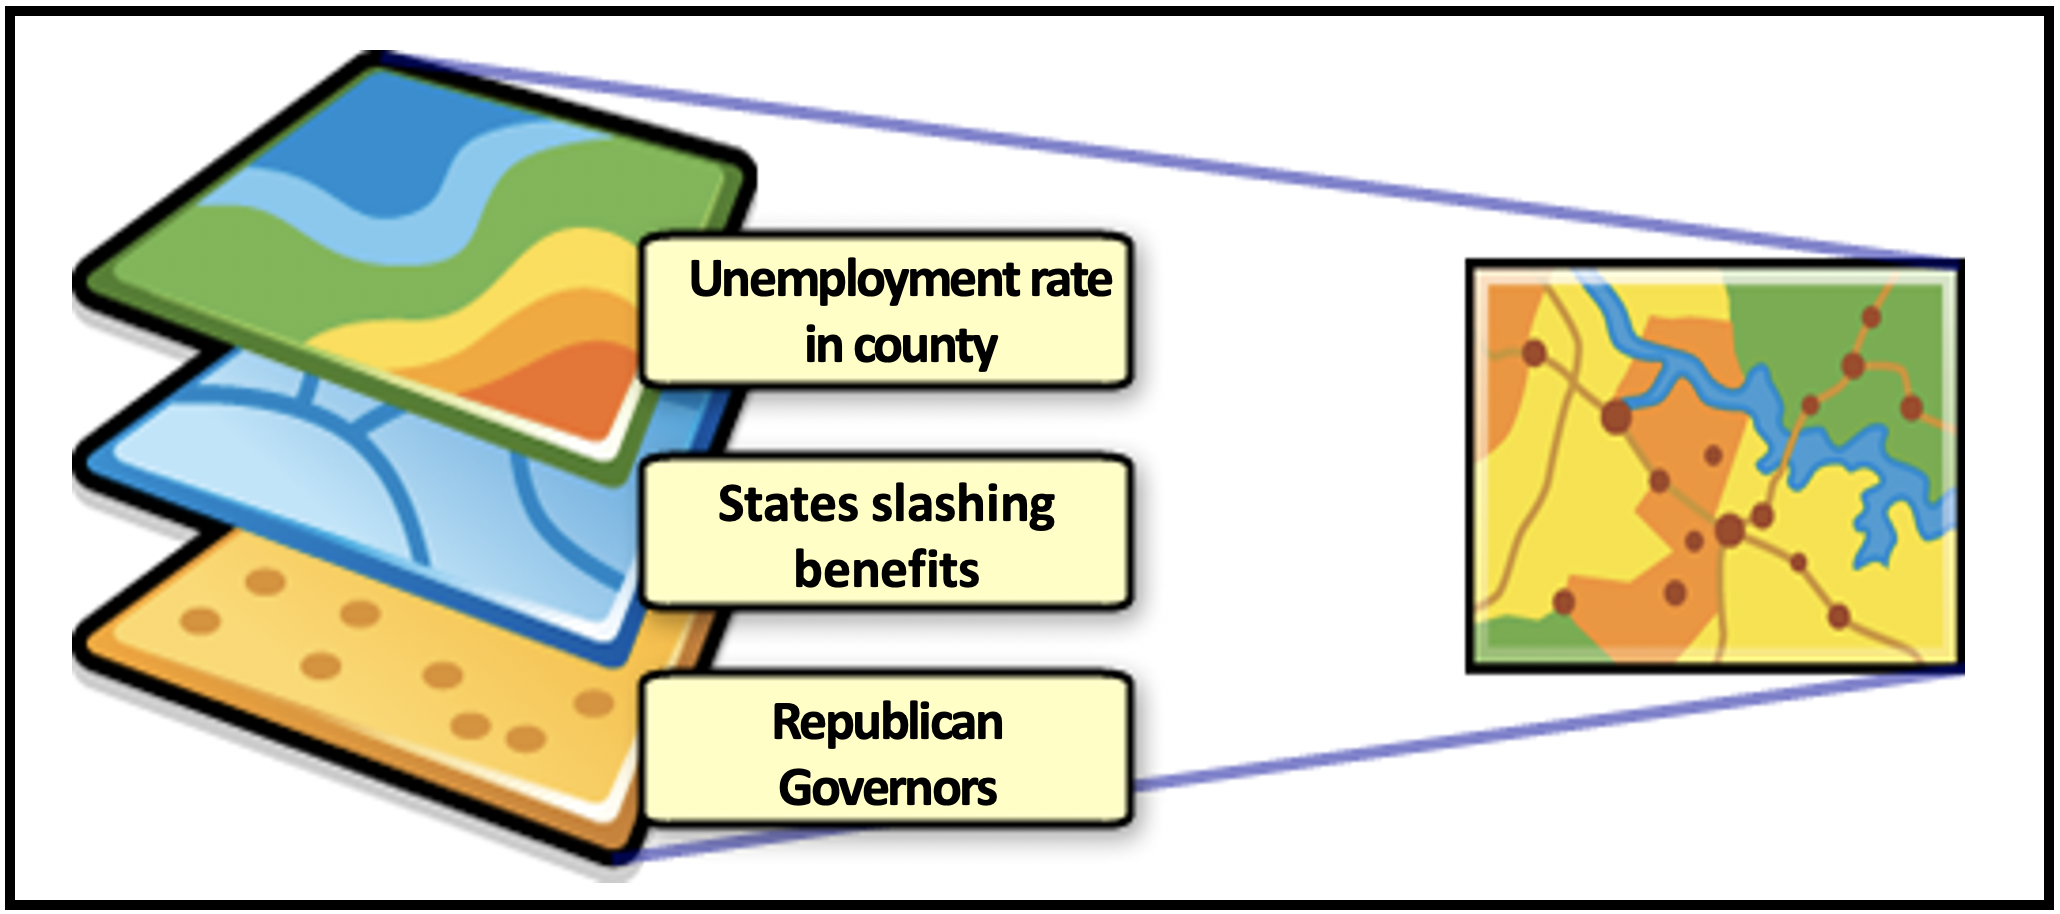 Map shows Republican Governors cutting unemployment benefits along with the unemployment rate in those counties.